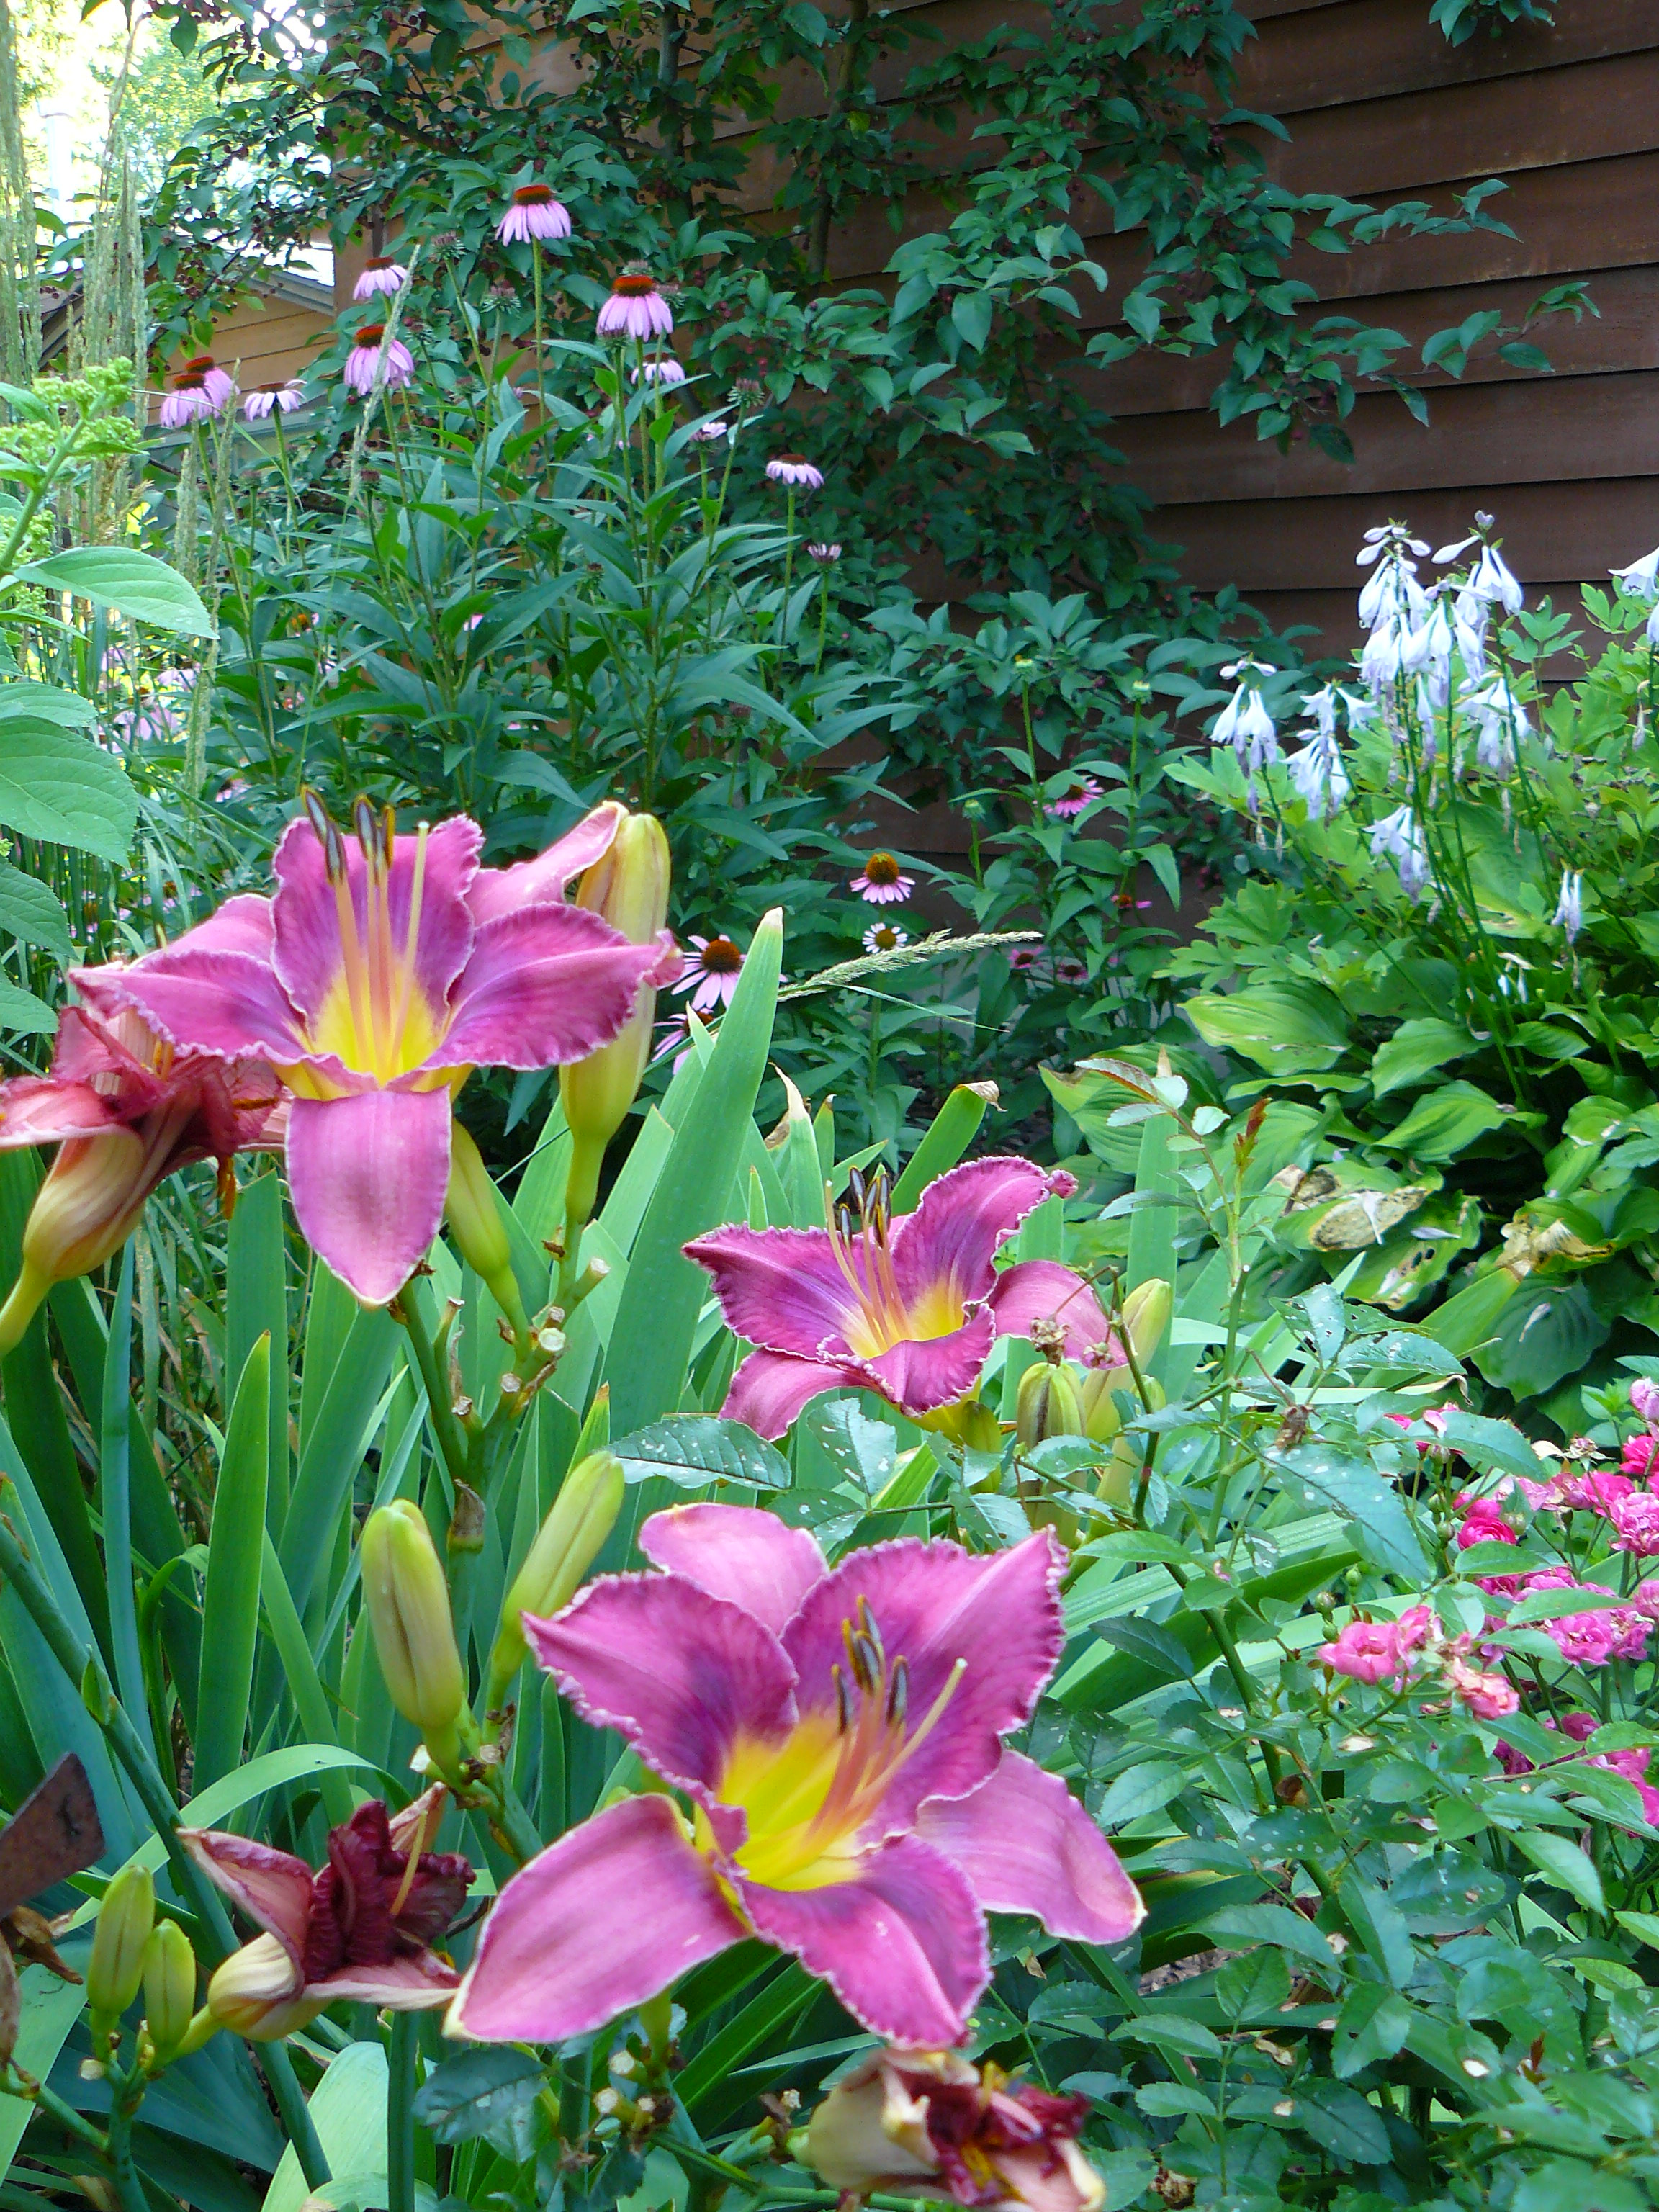 Daylilies in a home garden with other garden plants in the background